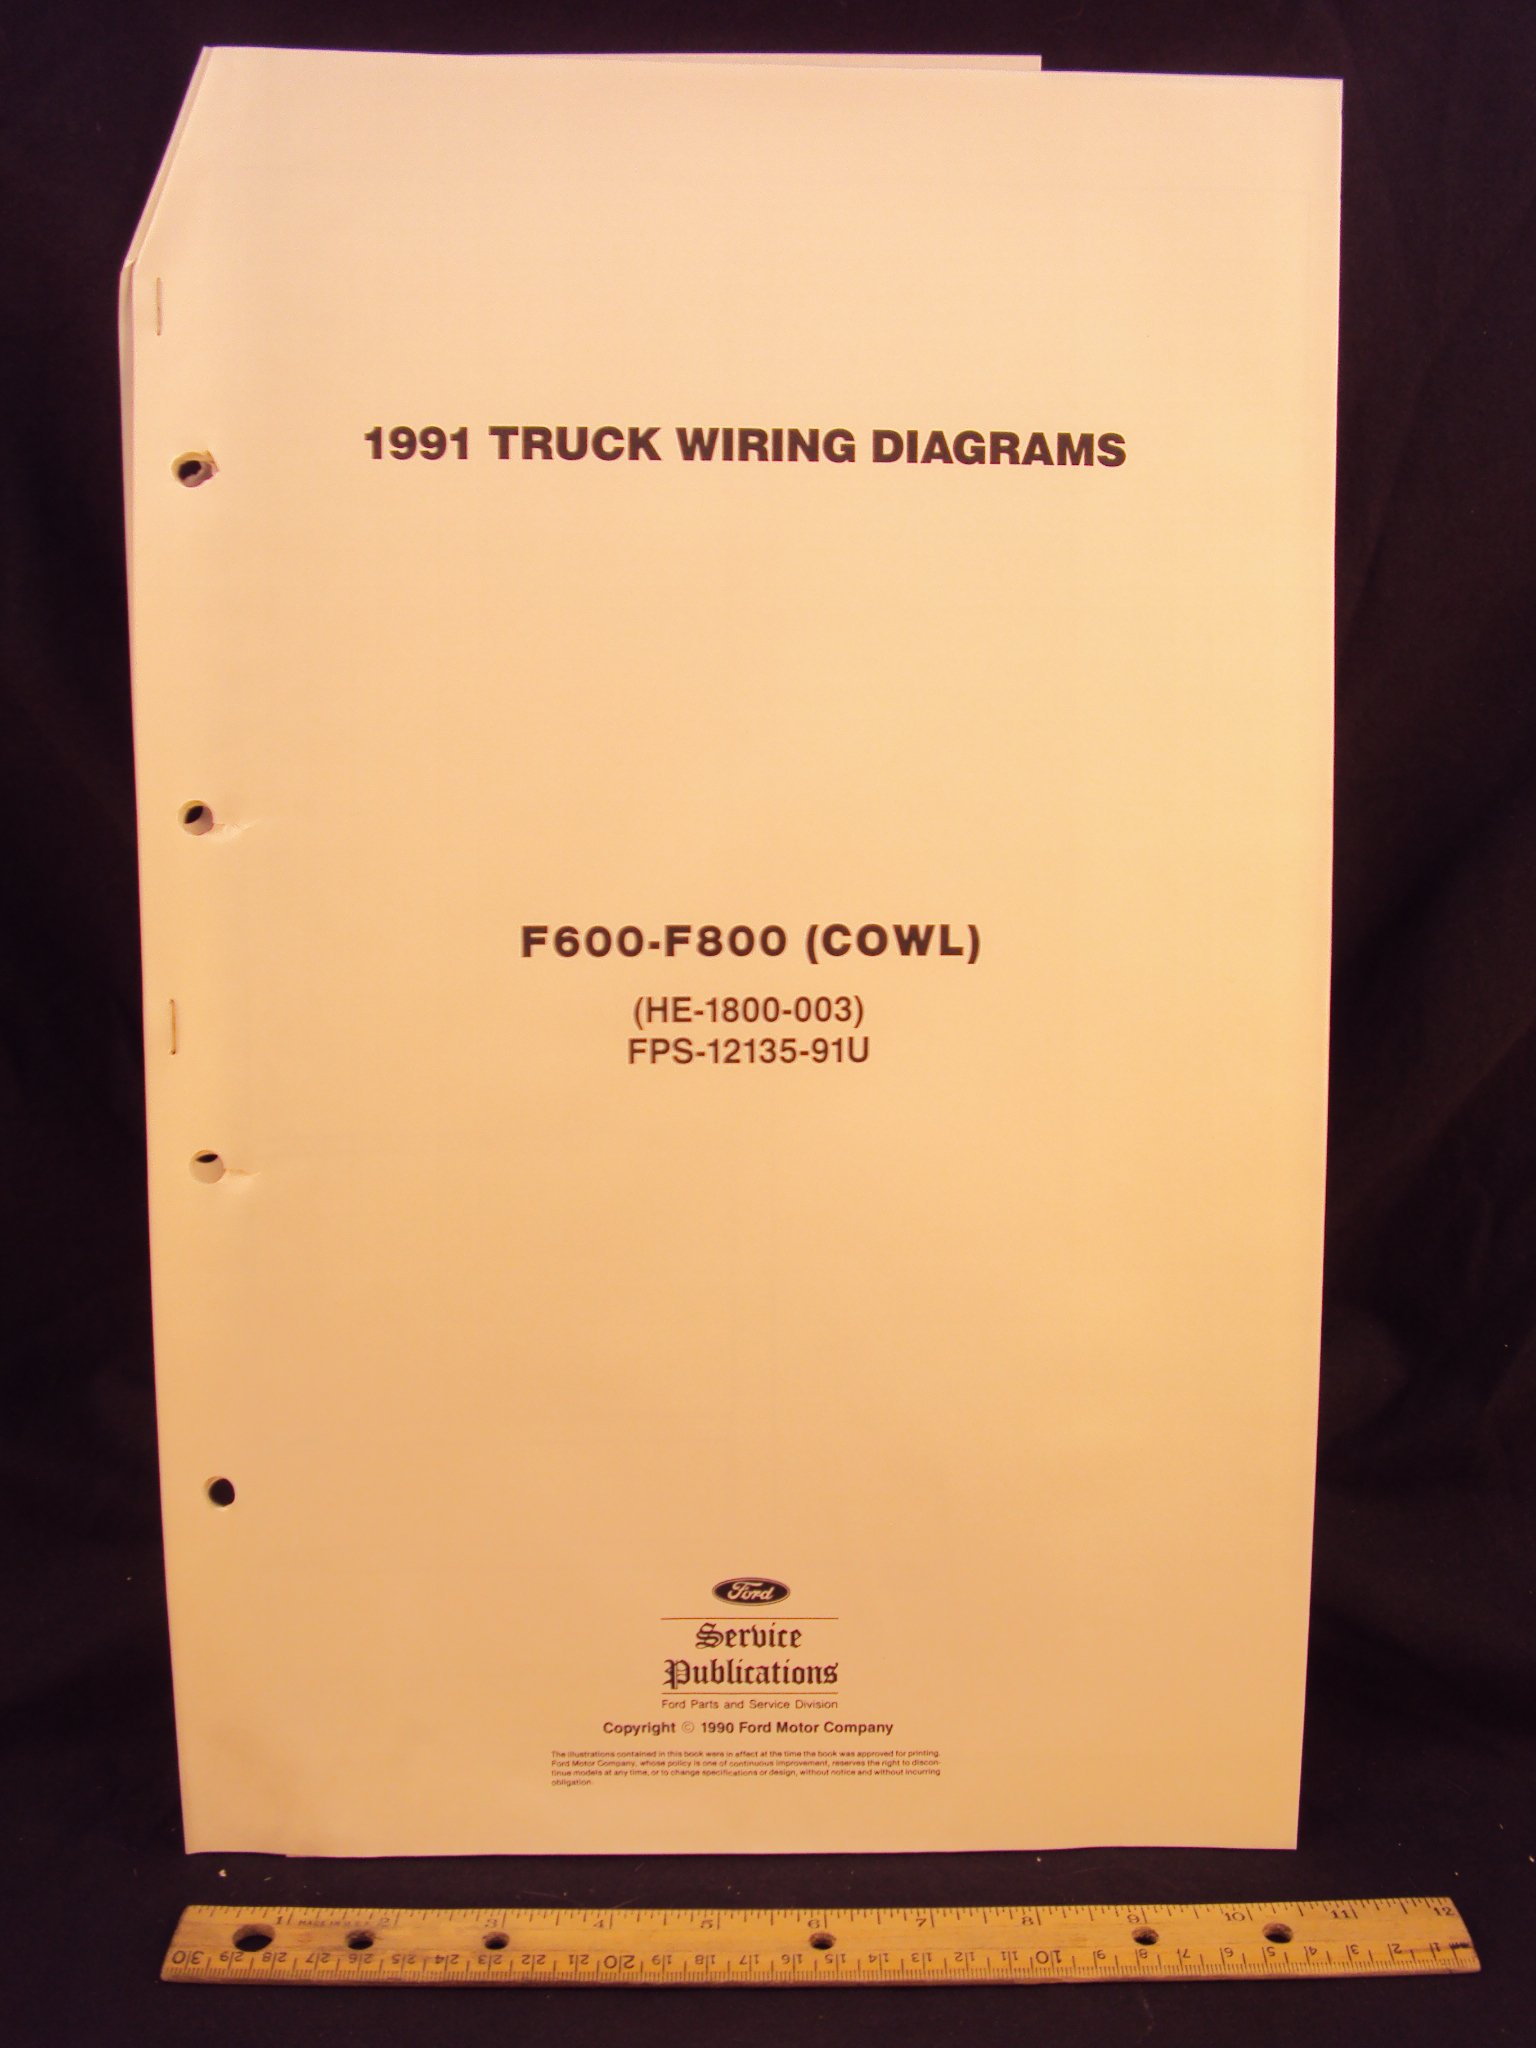 1991 FORD F600, F700, & F800 Series Cowl Truck Electrical Wiring Diagrams /  Schematics: Ford Motor Company: Amazon.com: Books